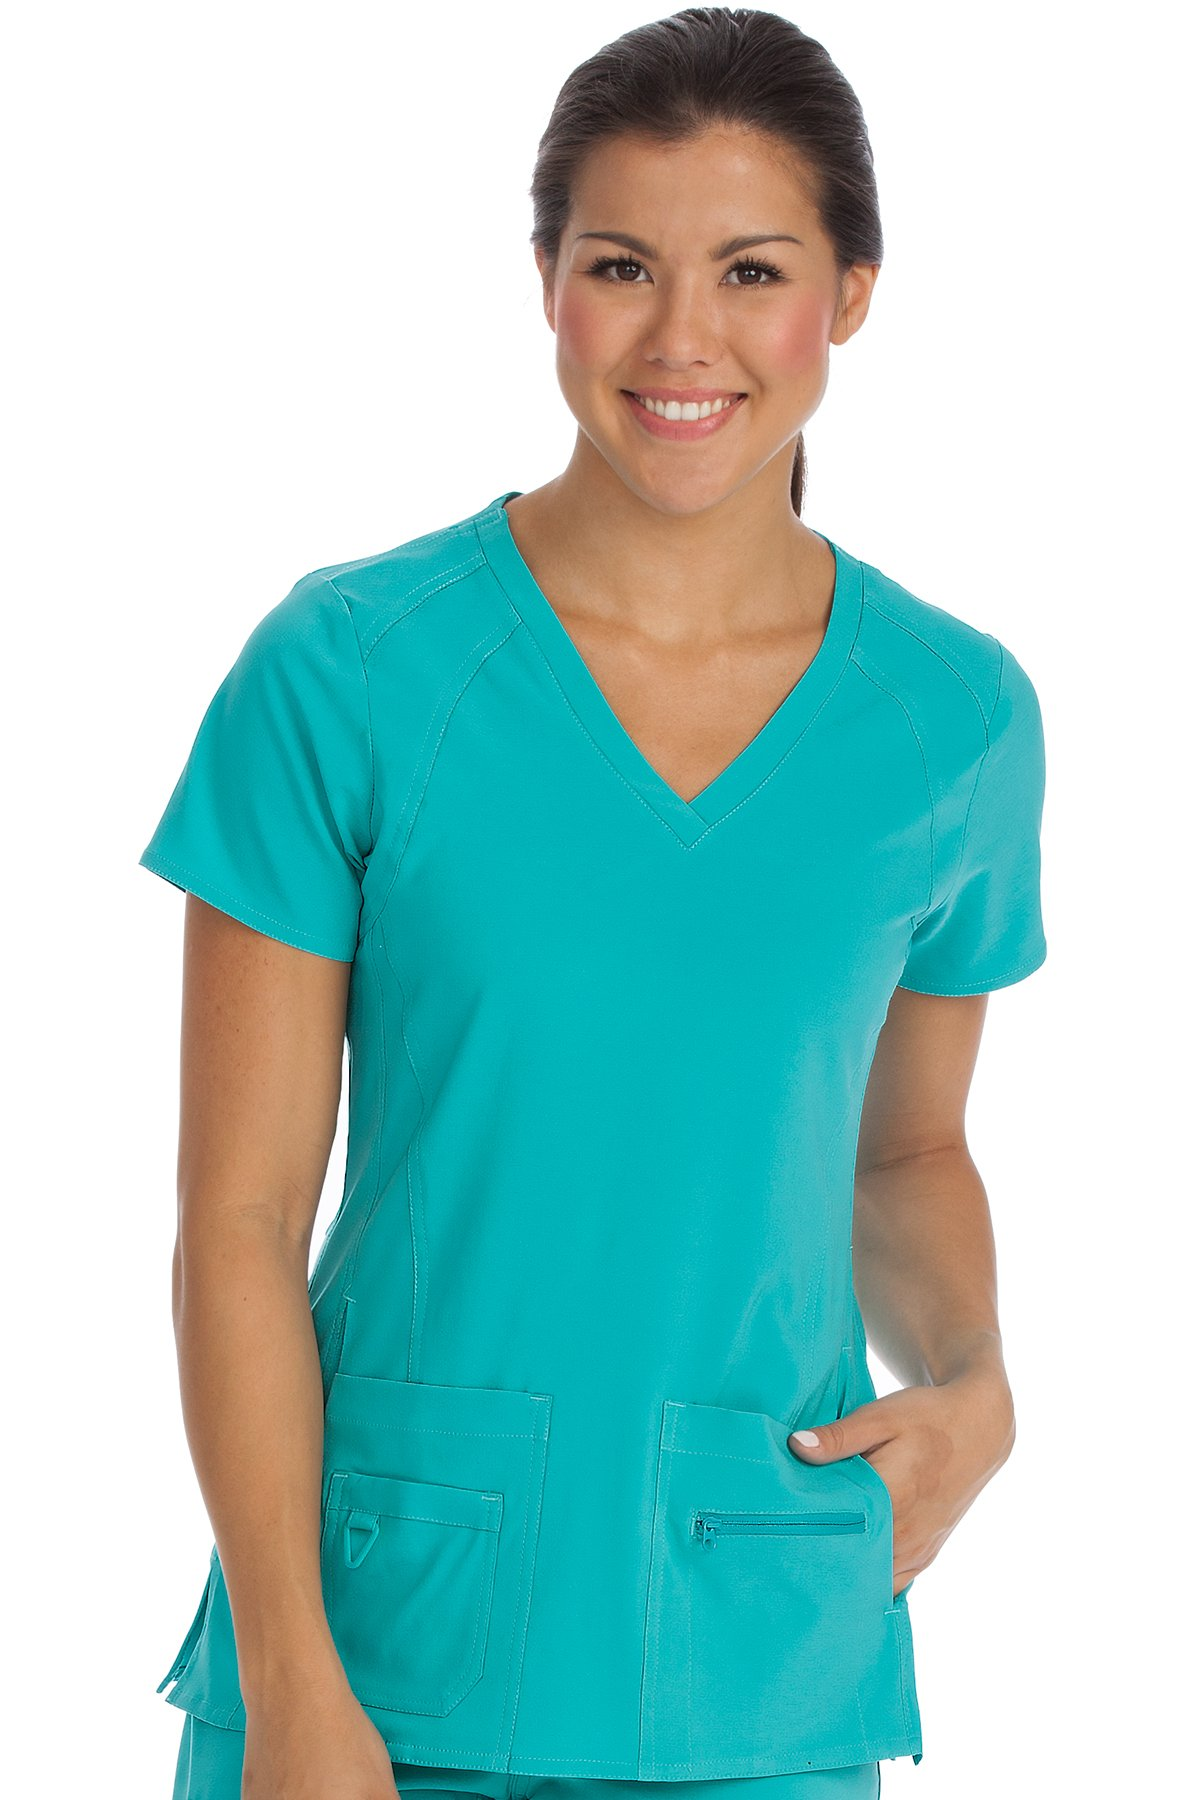 Med Couture Activate Women's V-Neck Racerback Scrub Top, Aquamarine, XXX-Large by Med Couture